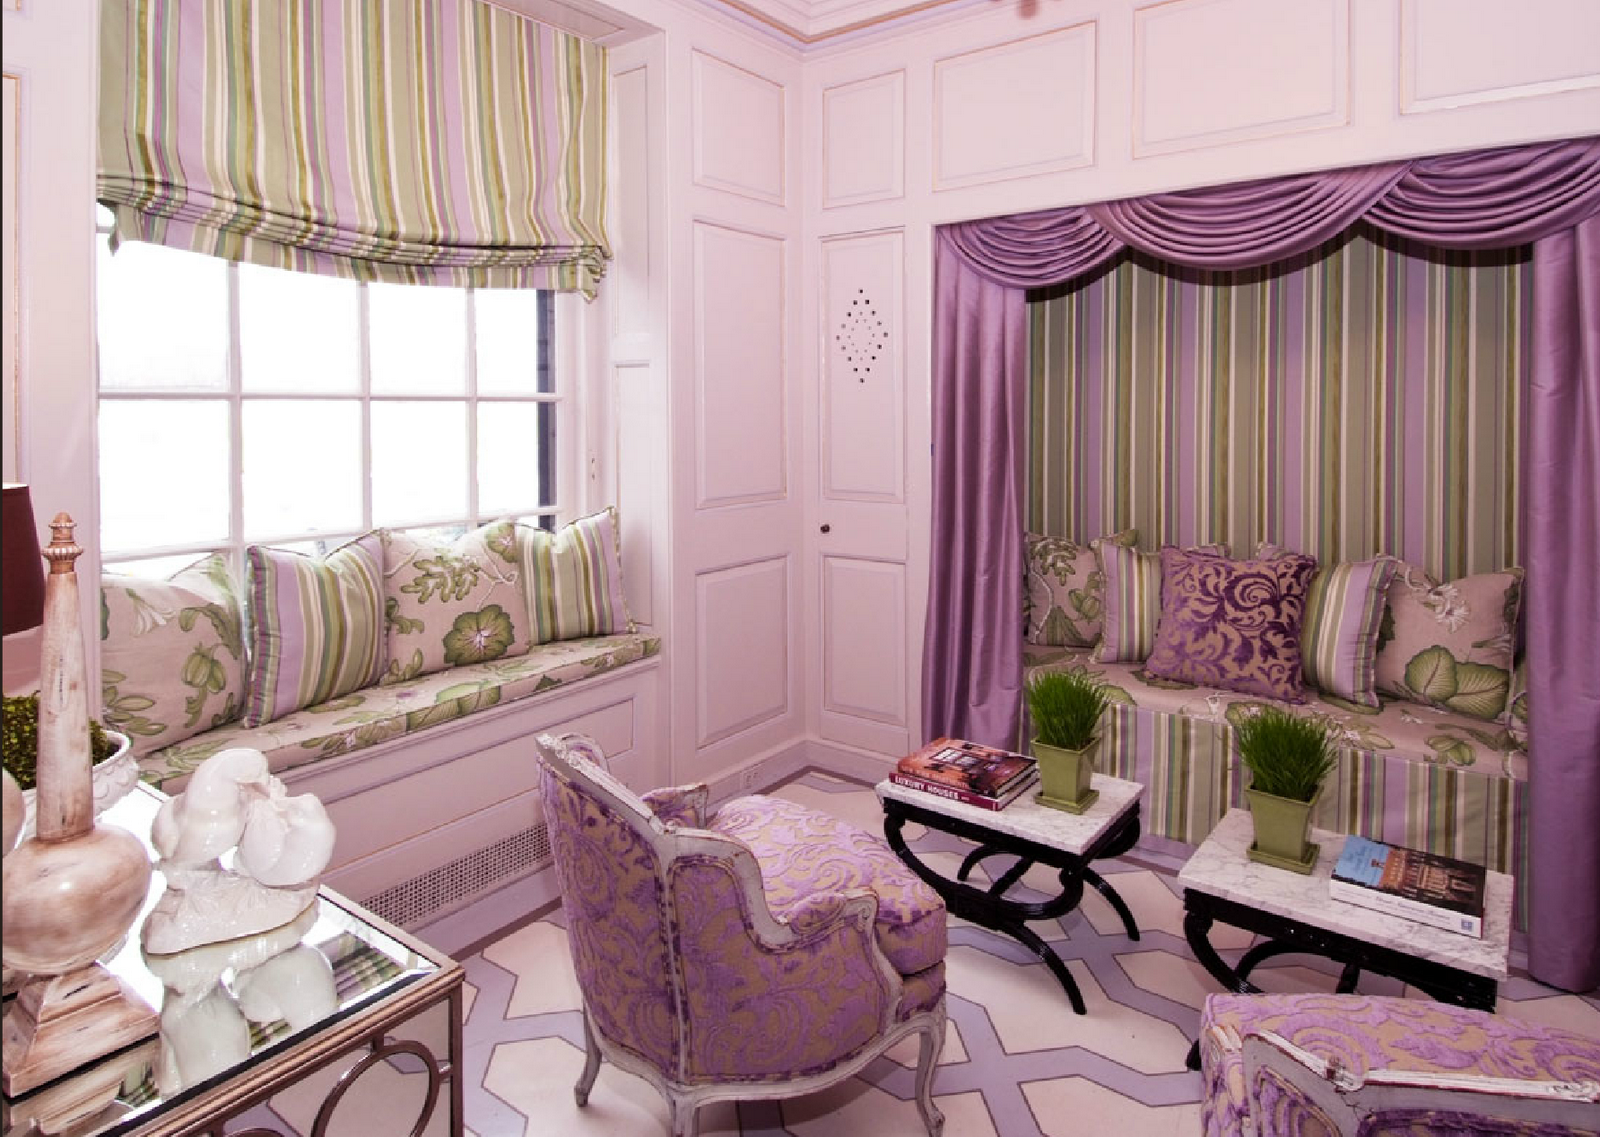 4 teen girls bedroom 7 interior design ideas for Girl bedroom designs